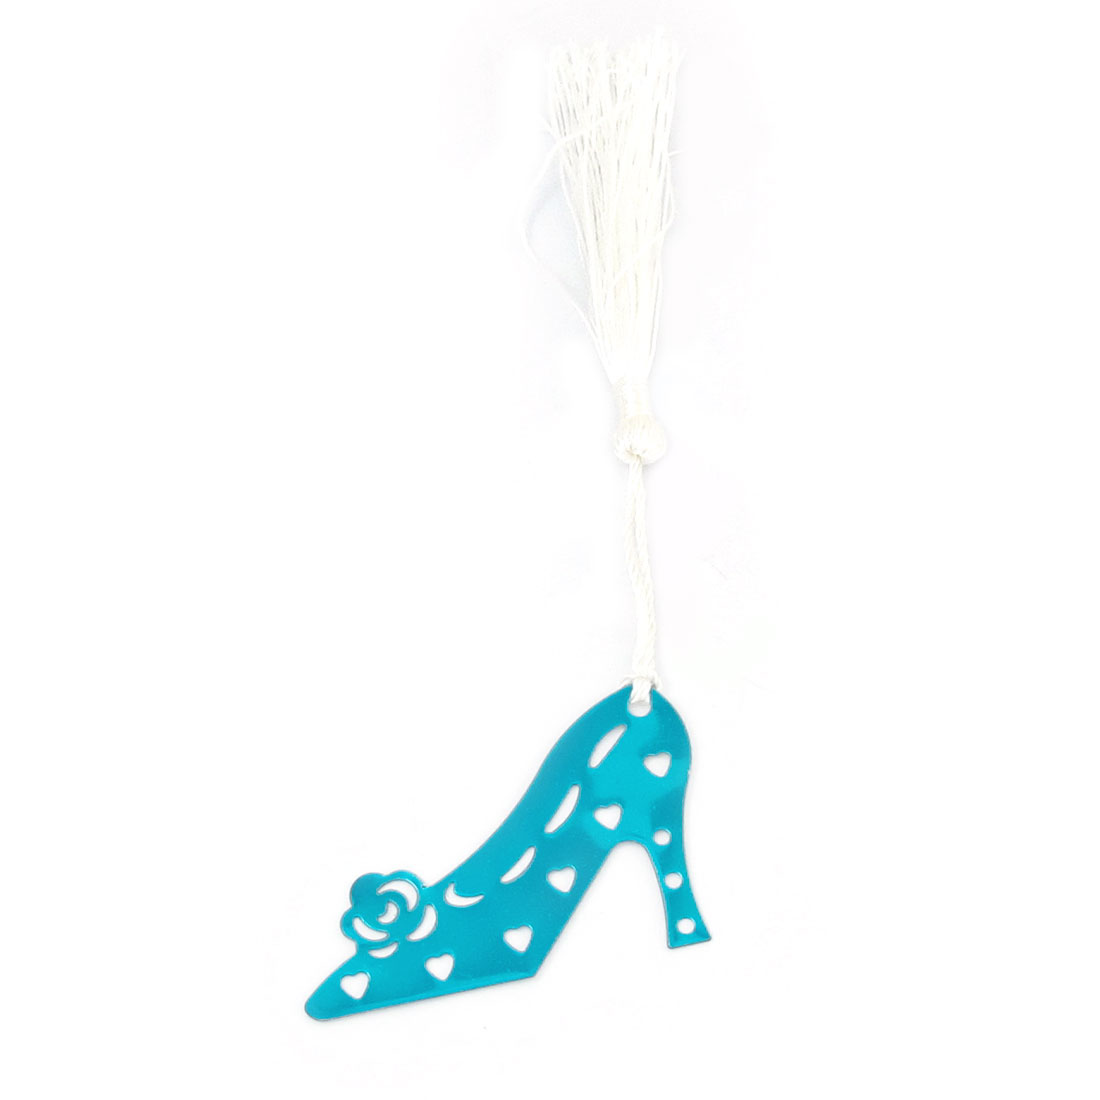 Teal High-heeled Shoes Design White Tassels Decorated Bookmark